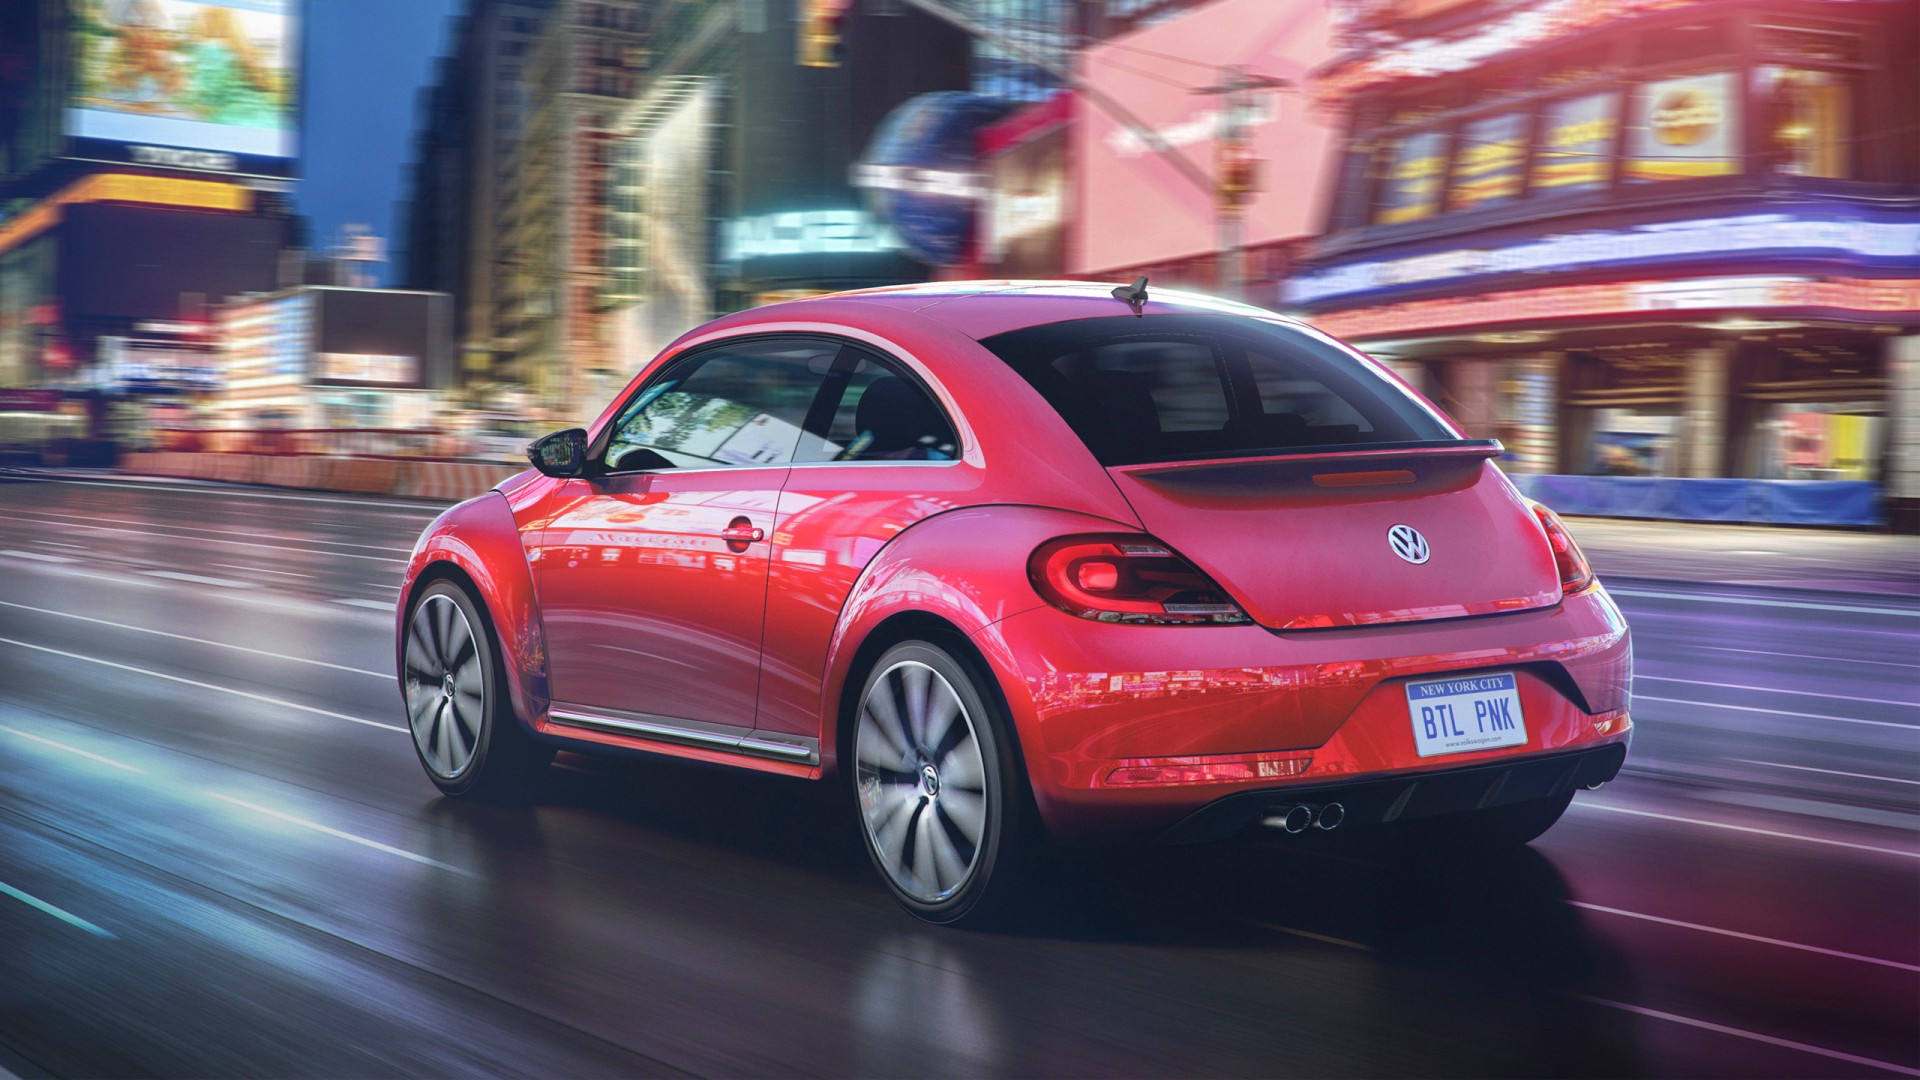 New Lexus Suv >> 2017 Volkswagen Pink Beetle Limited Edition 2 Wallpaper | HD Car Wallpapers | ID #6624